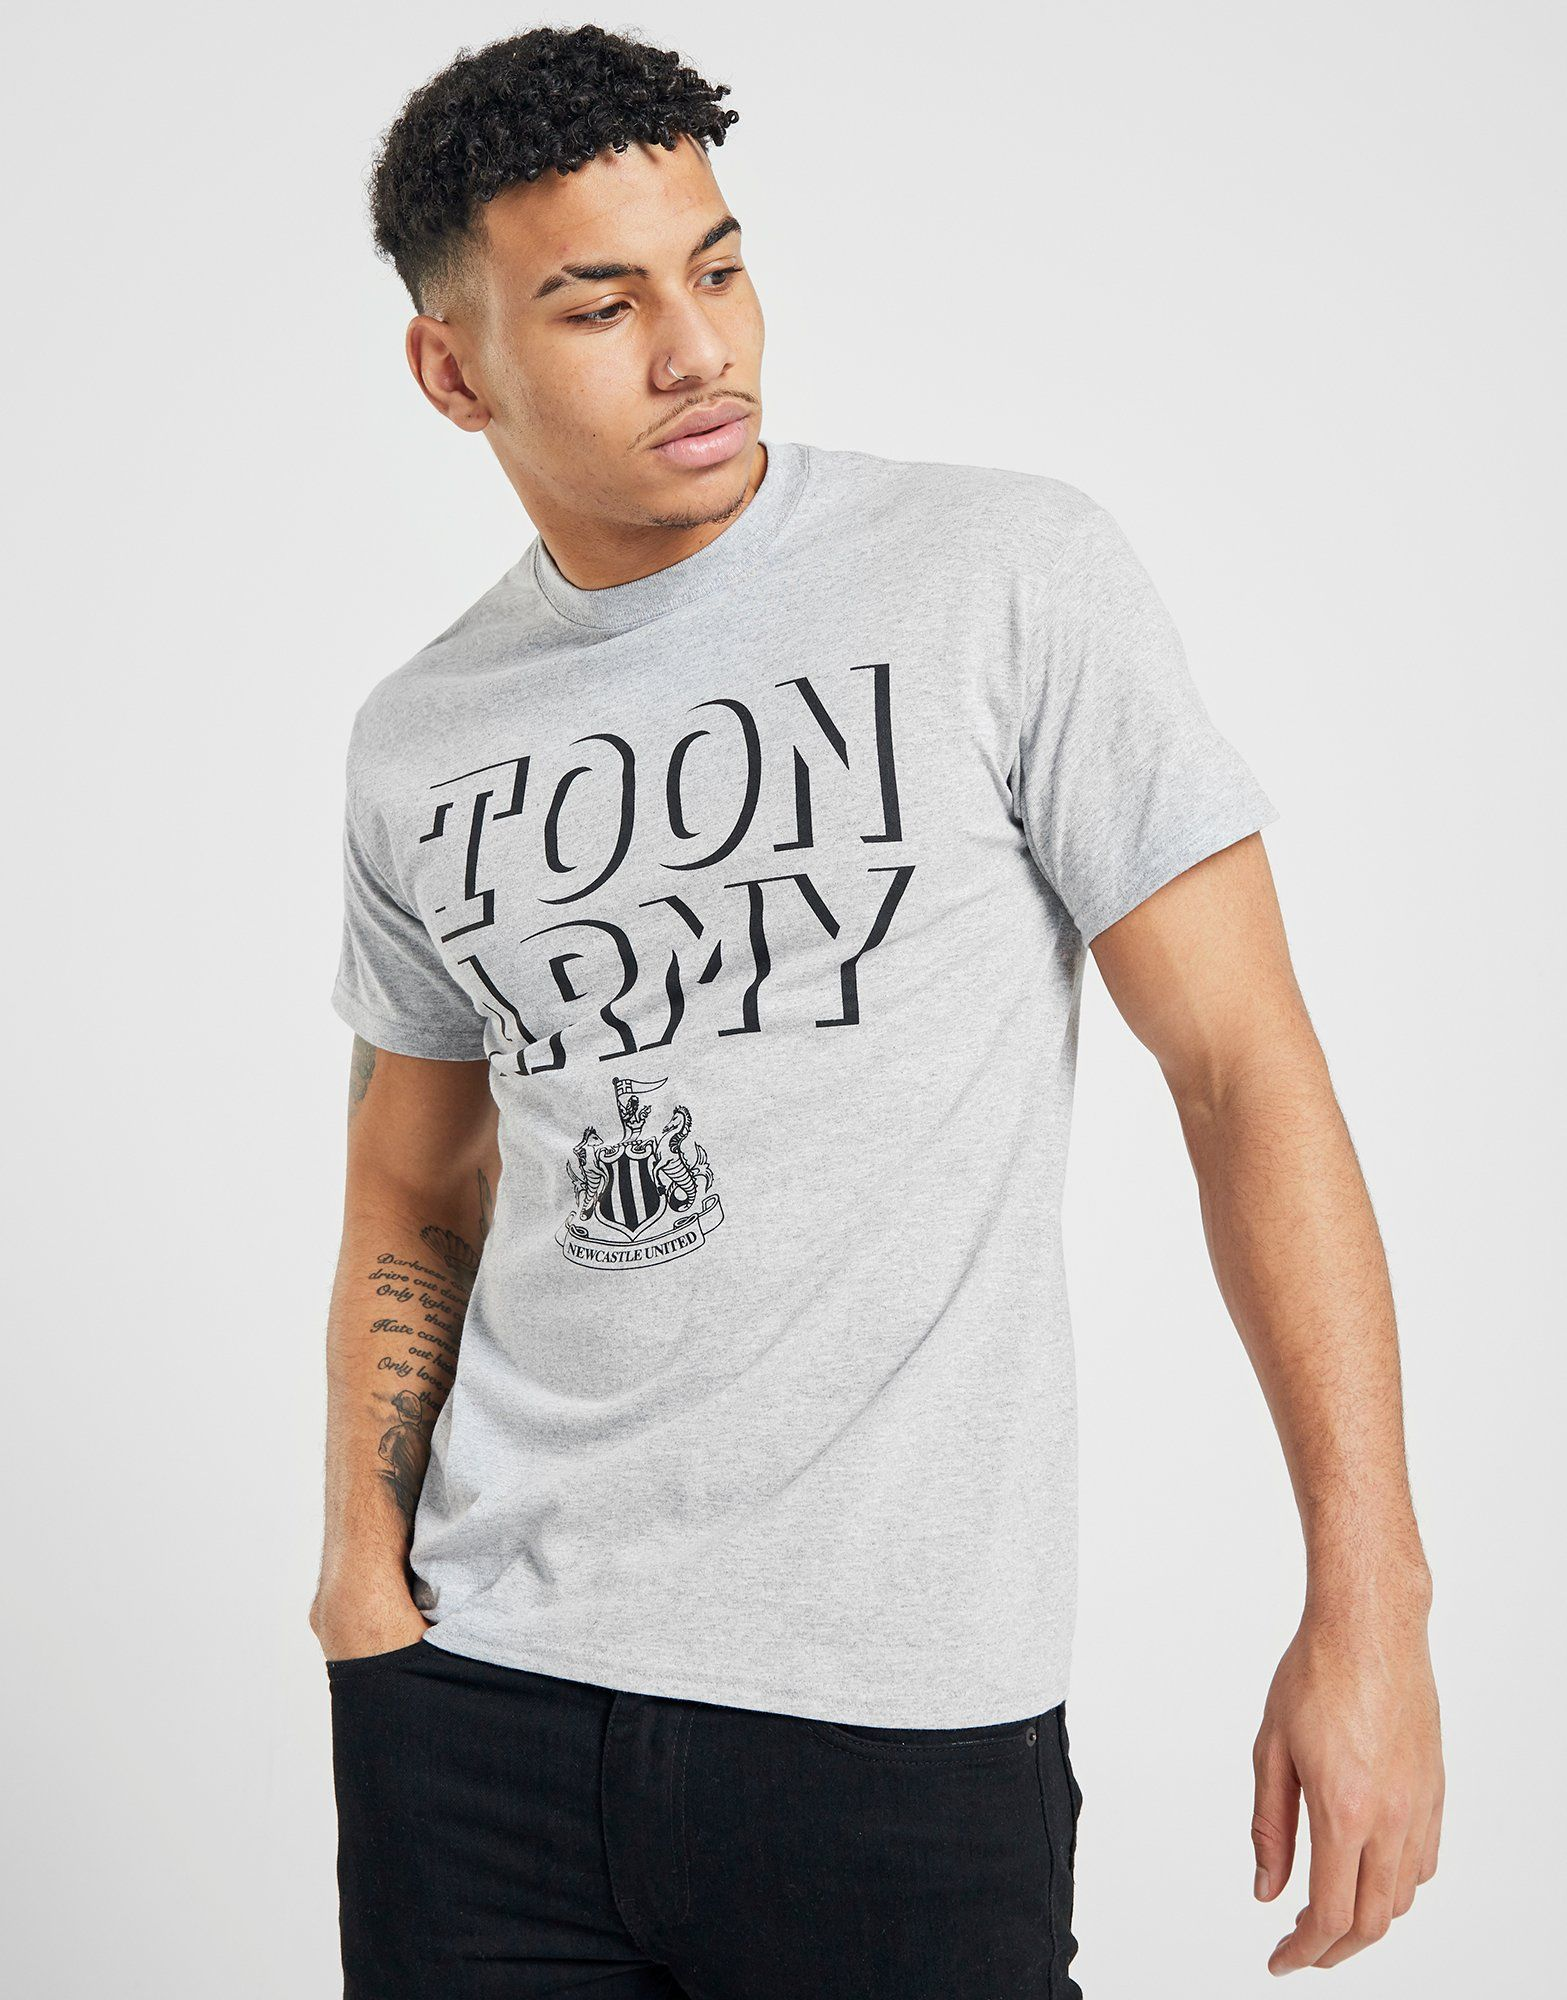 Official Team Newcastle United 2017 Toon Army T-Shirt